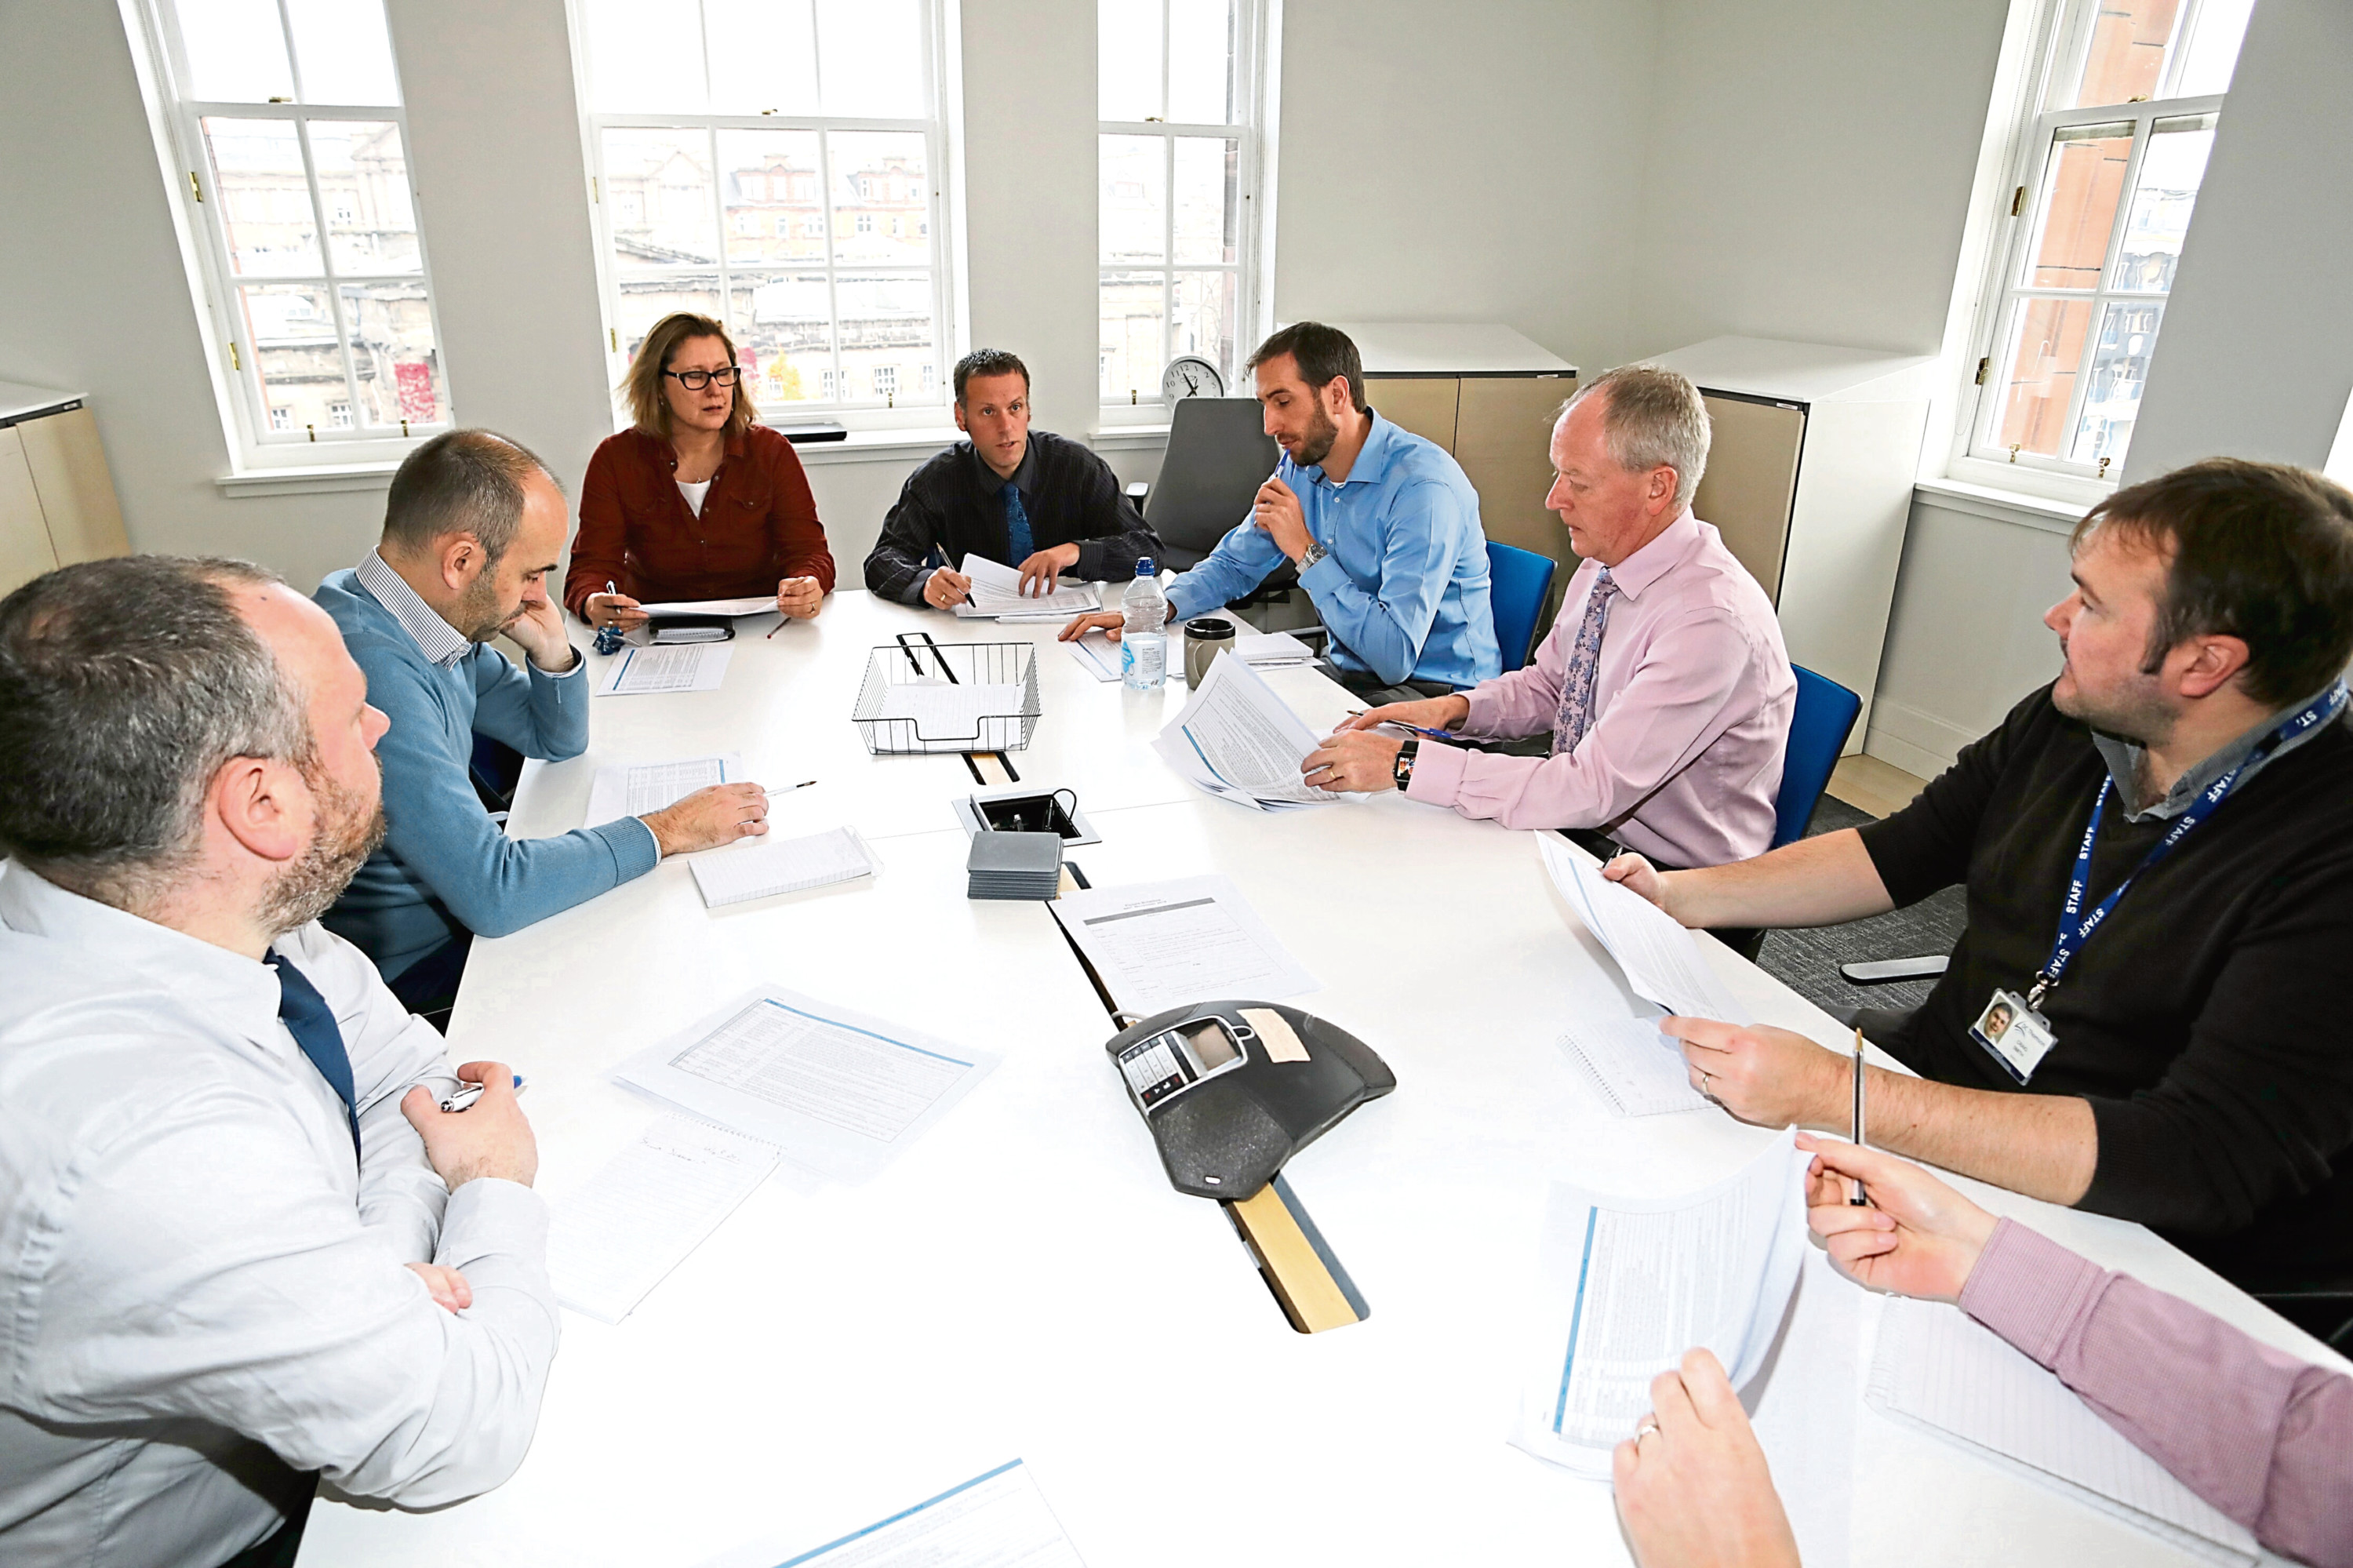 The Impact 100 judging session under way in early November.